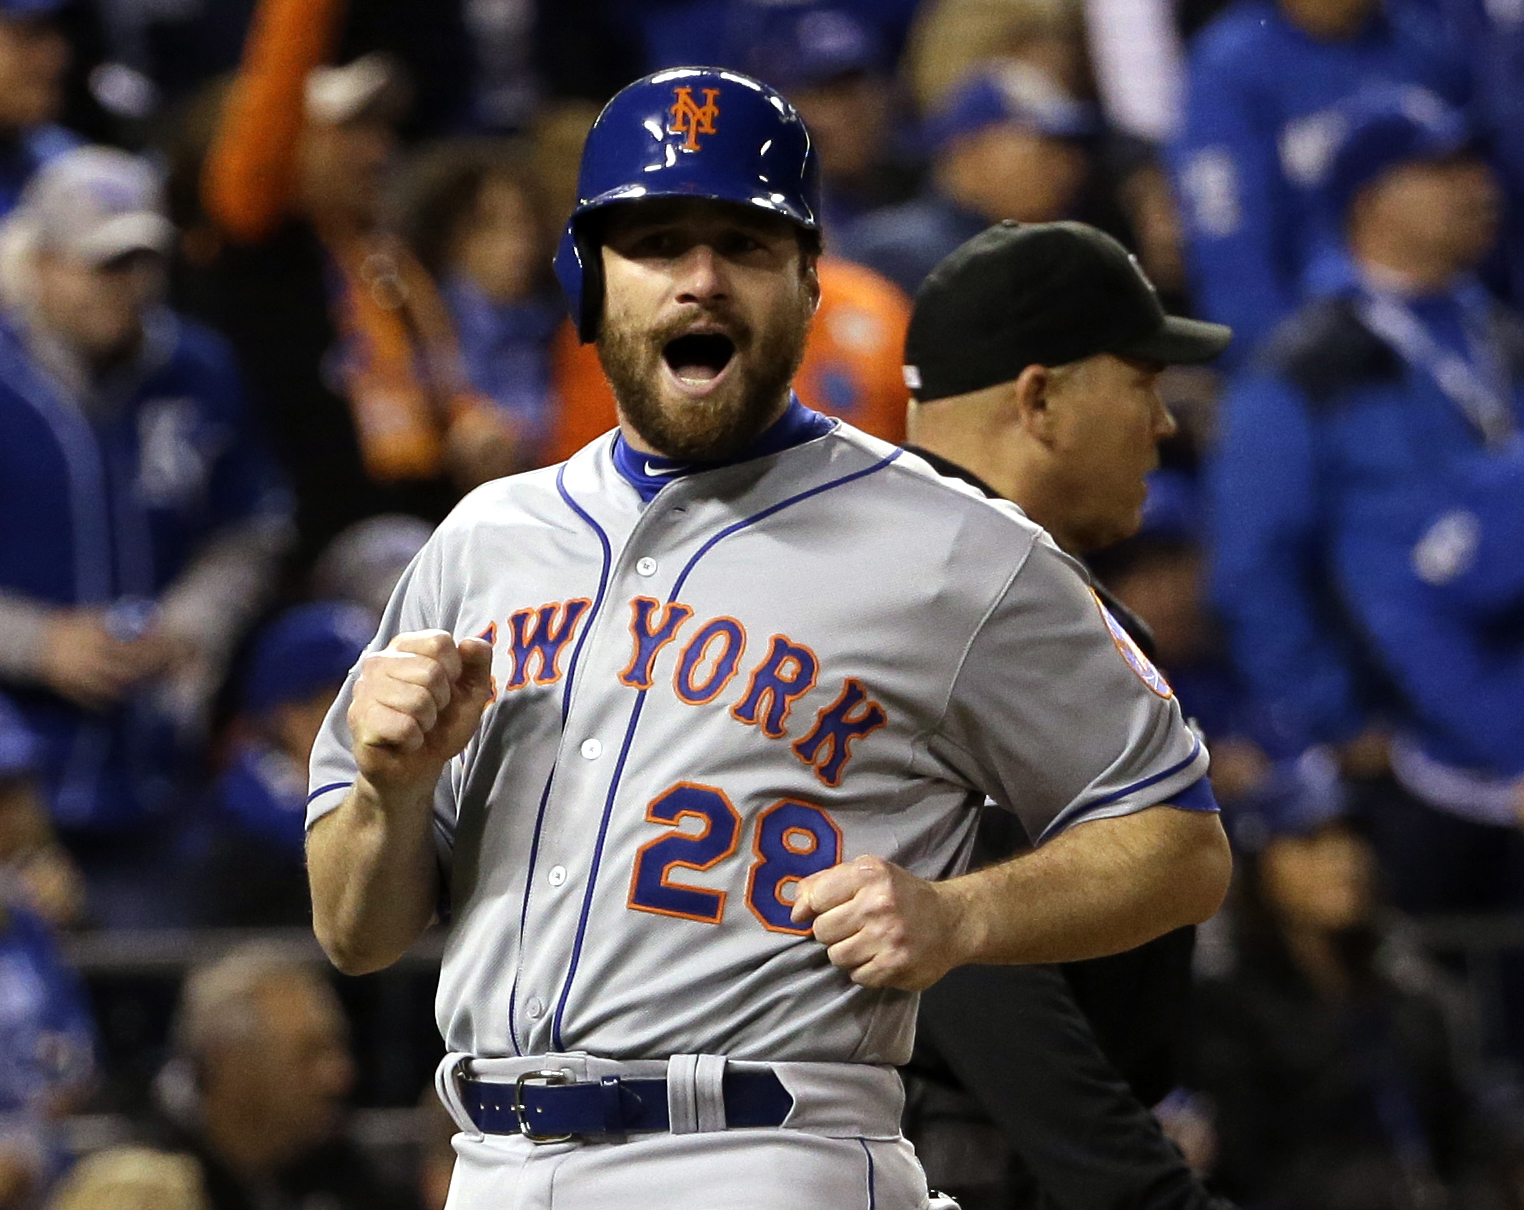 FILE - In this Oct. 28, 2015 file photo, New York Mets' Daniel Murphy reacts as he scores in Game 2 of the Major League Baseball World Series against the Kansas City Royals,  in Kansas City, Mo. On Wednesday, Jan. 6, 2016, The Washington Nationals agreed